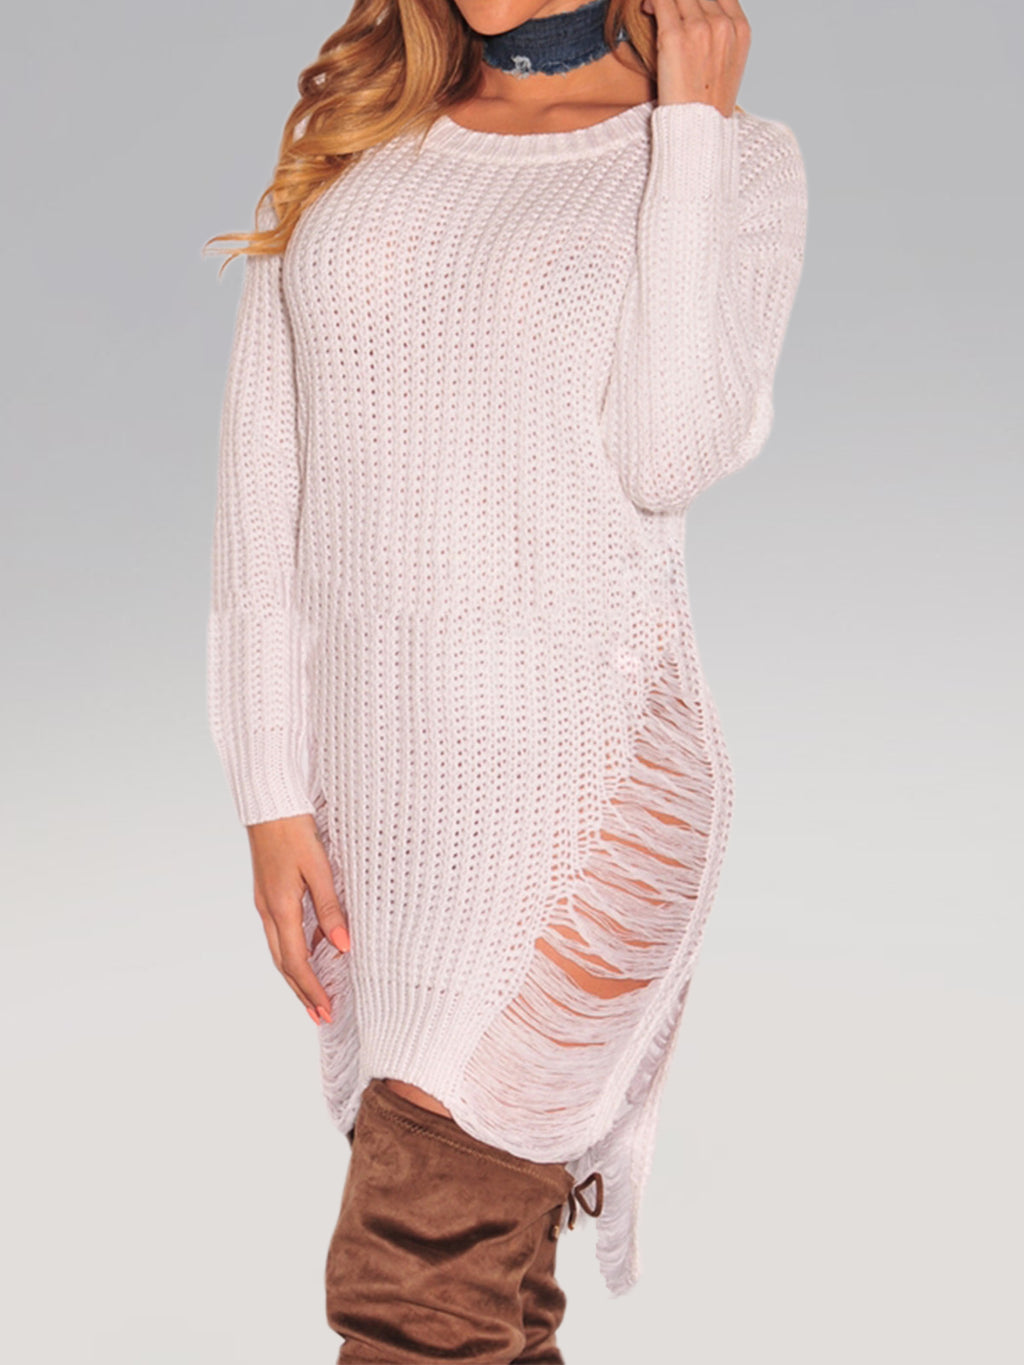 White Sexy Knitted See-Through Look Long Sleeve Bodycon Dress Rikkishop